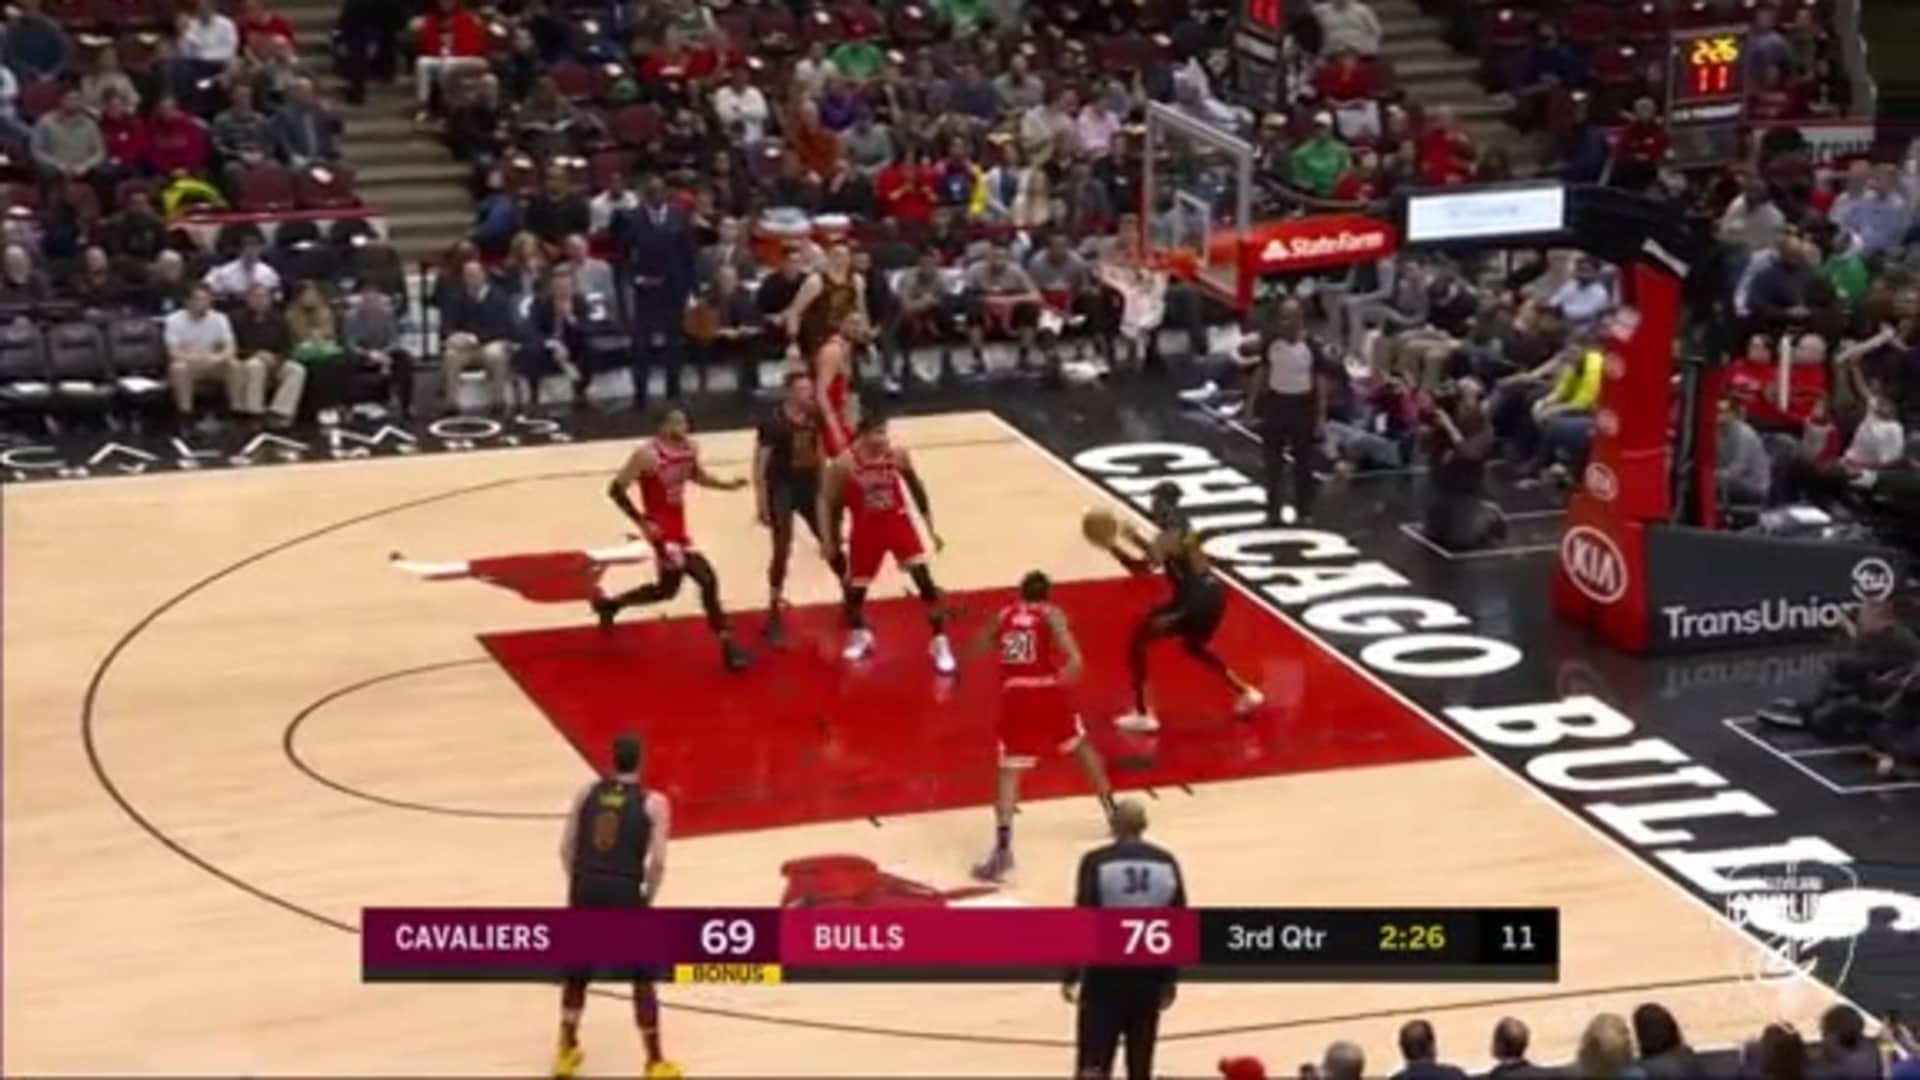 Nance Passes to McKinnie for Easy Dunk